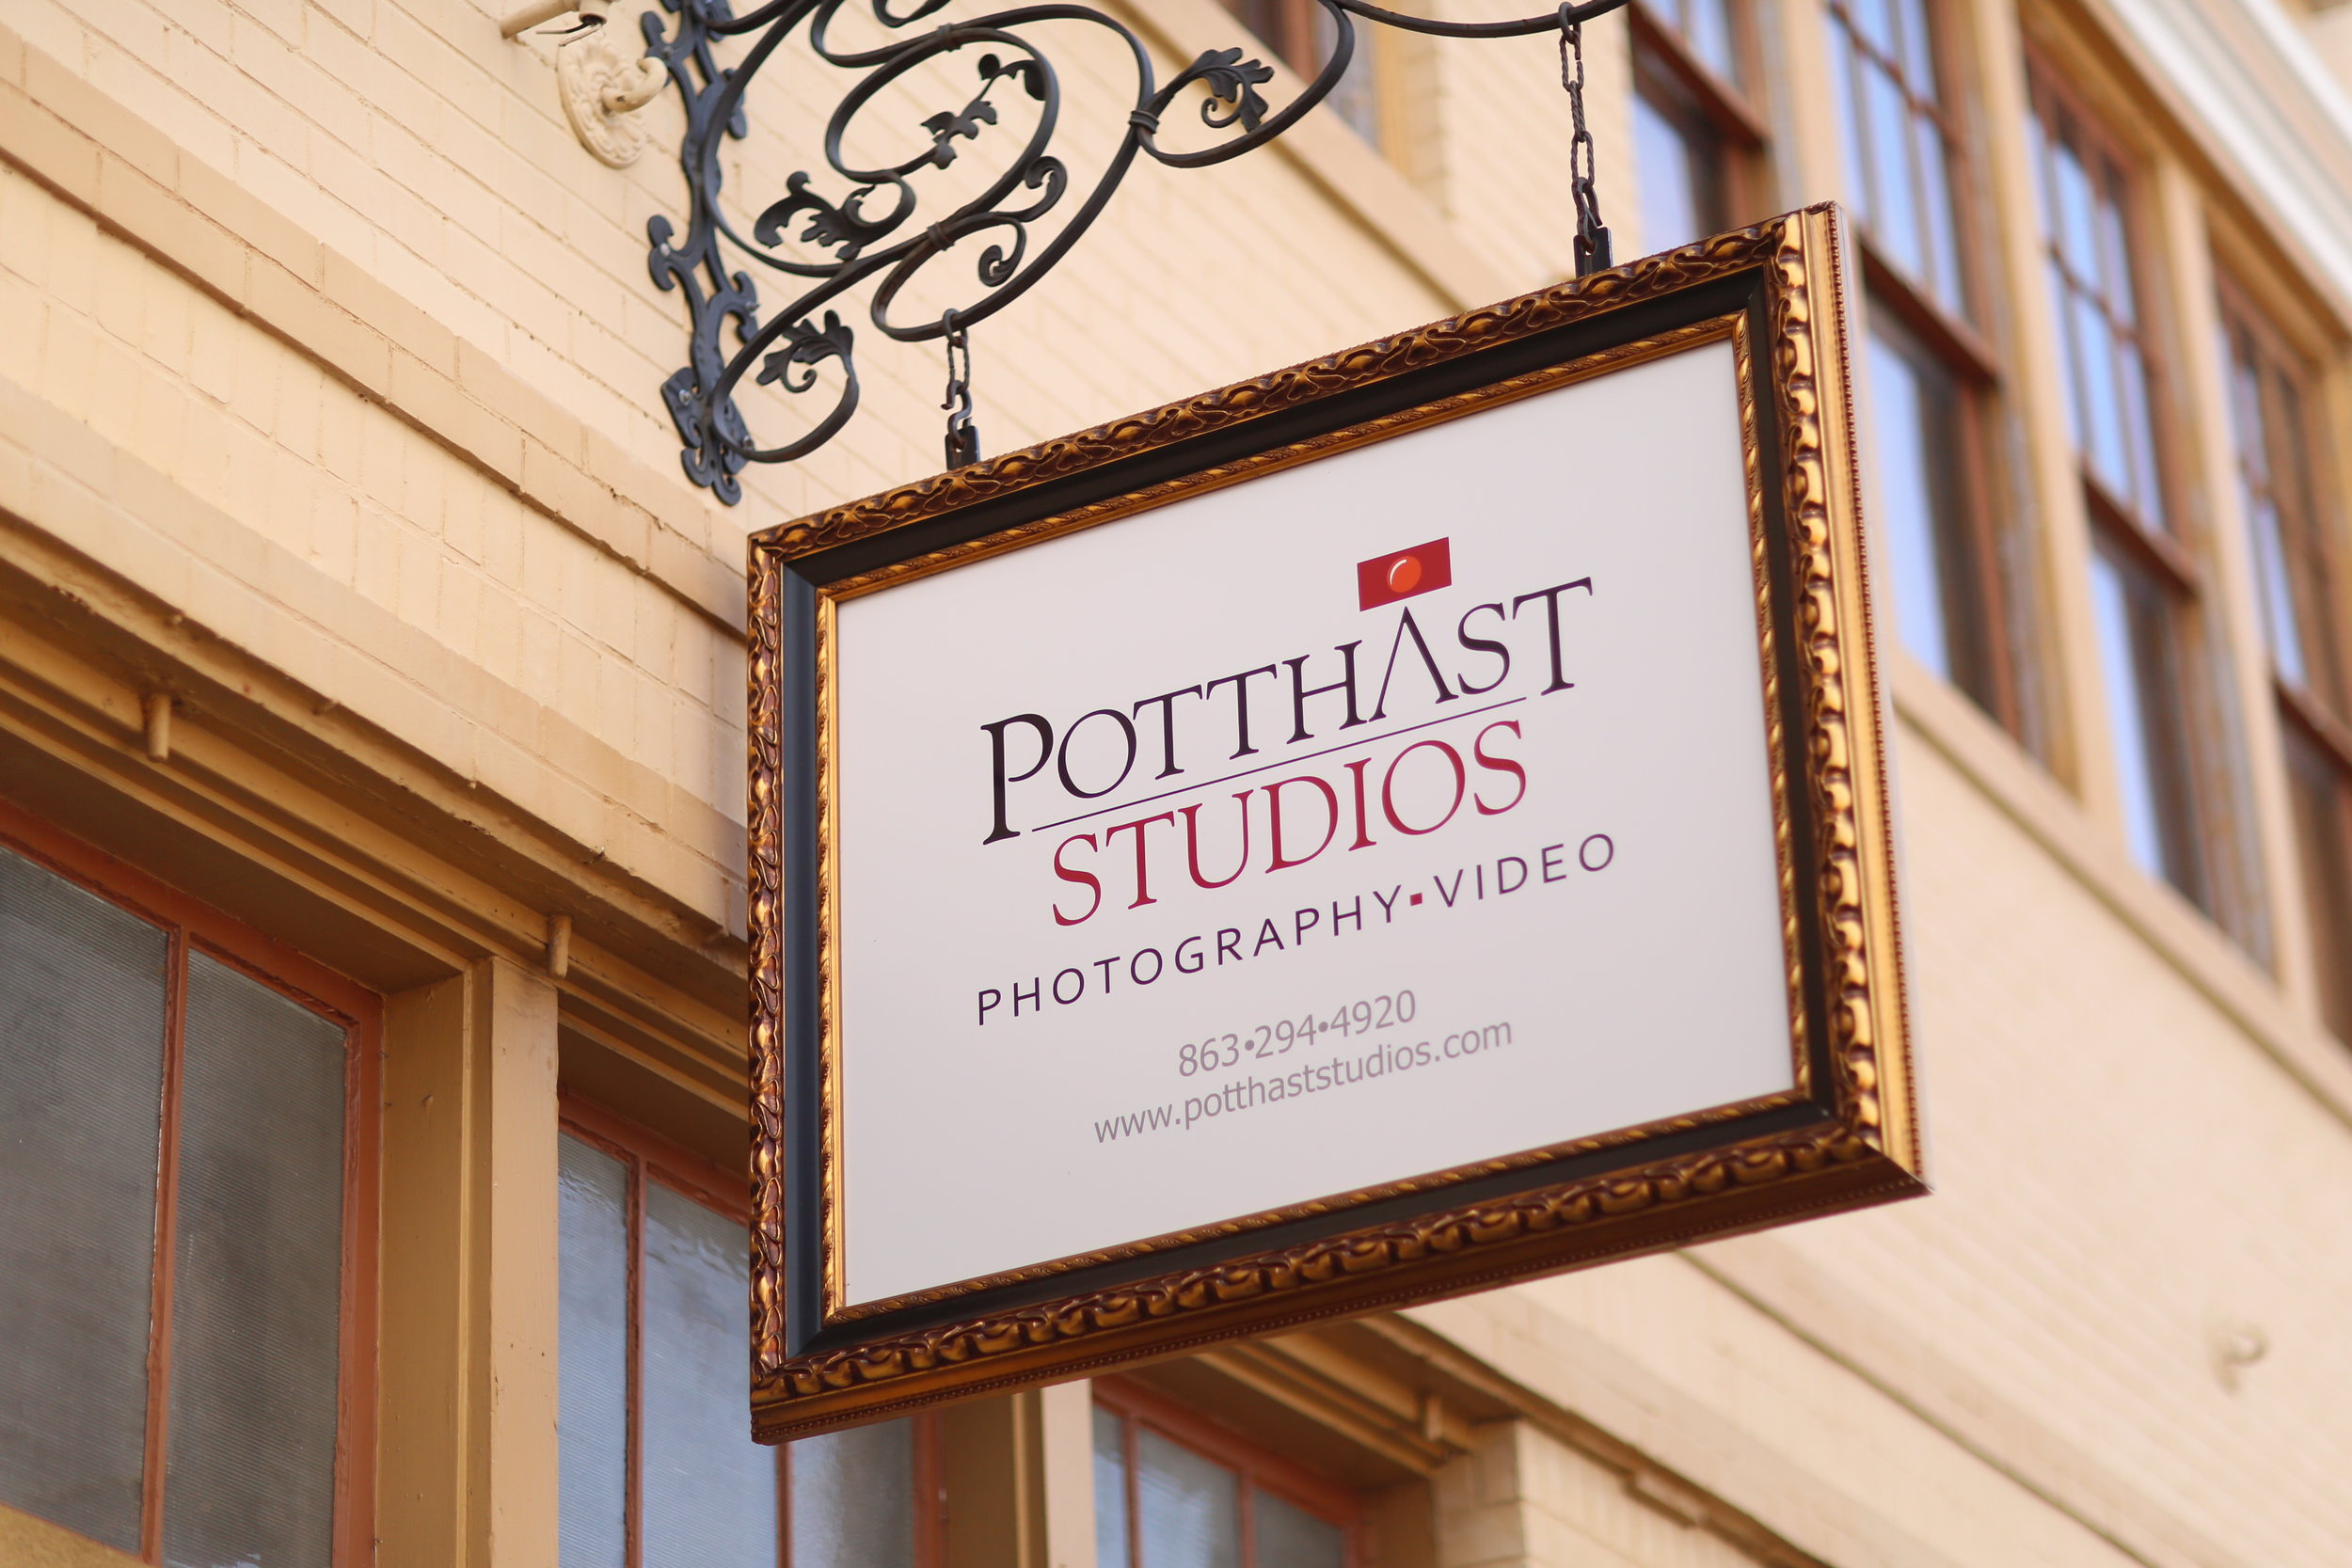 Convenient Location - We operate a professional store front studio in downtown Winter Haven. We can accommodate early morning or after hours appointments when necessary.234 West Central AvenueWinter Haven, FL 33880863-294-4920Normal Business Hours:Tuesday - Friday: 9am - 5pmWeekends and Evening by Appt.